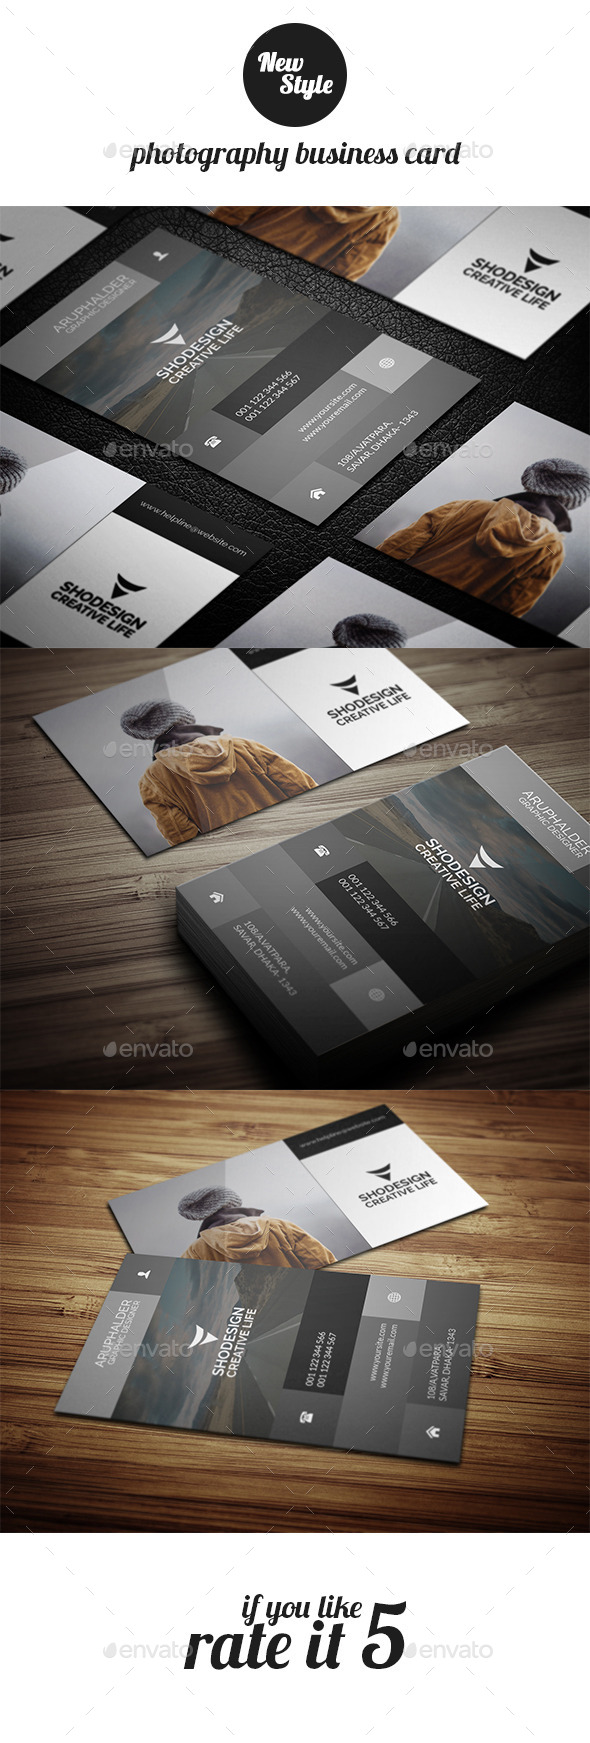 GraphicRiver Photography Busienss Card Template 11875985